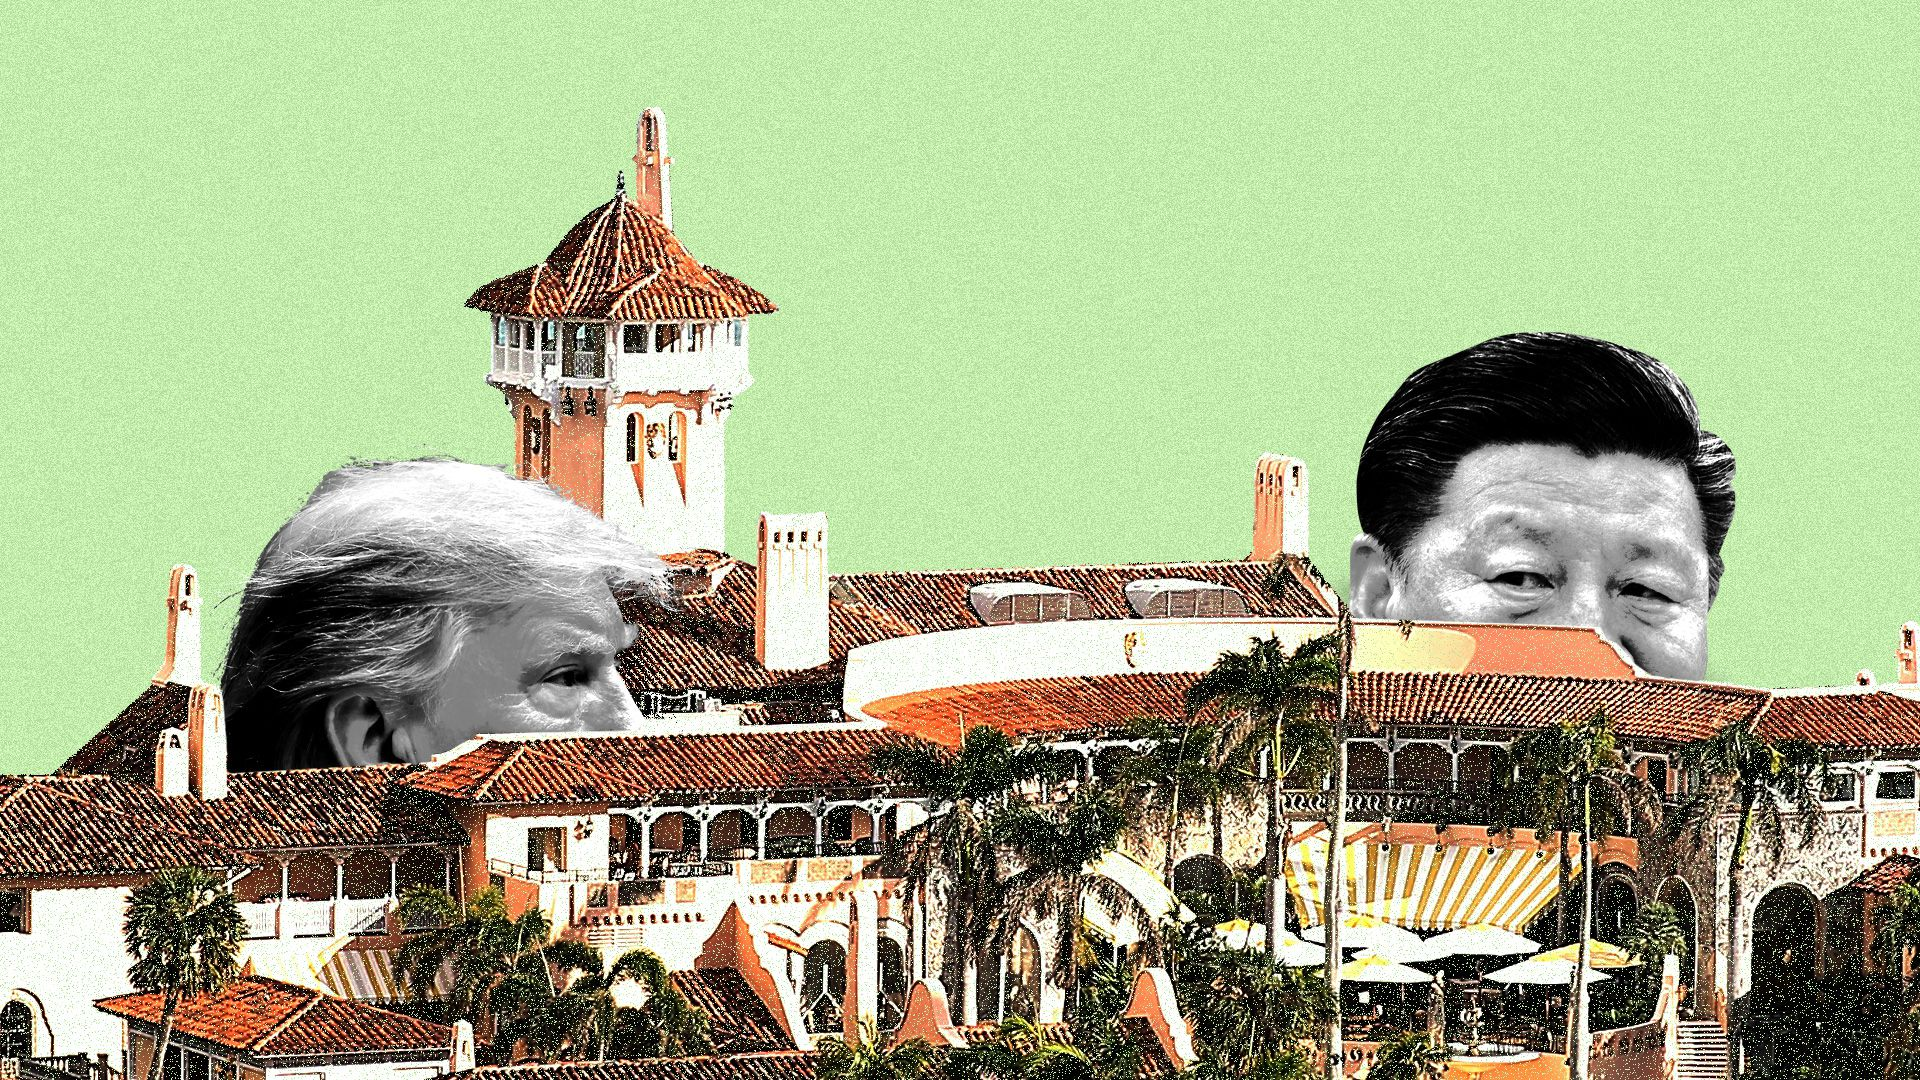 Donald Trump and Xi Jinping peering at each other on the grounds of Mar-a-Lago